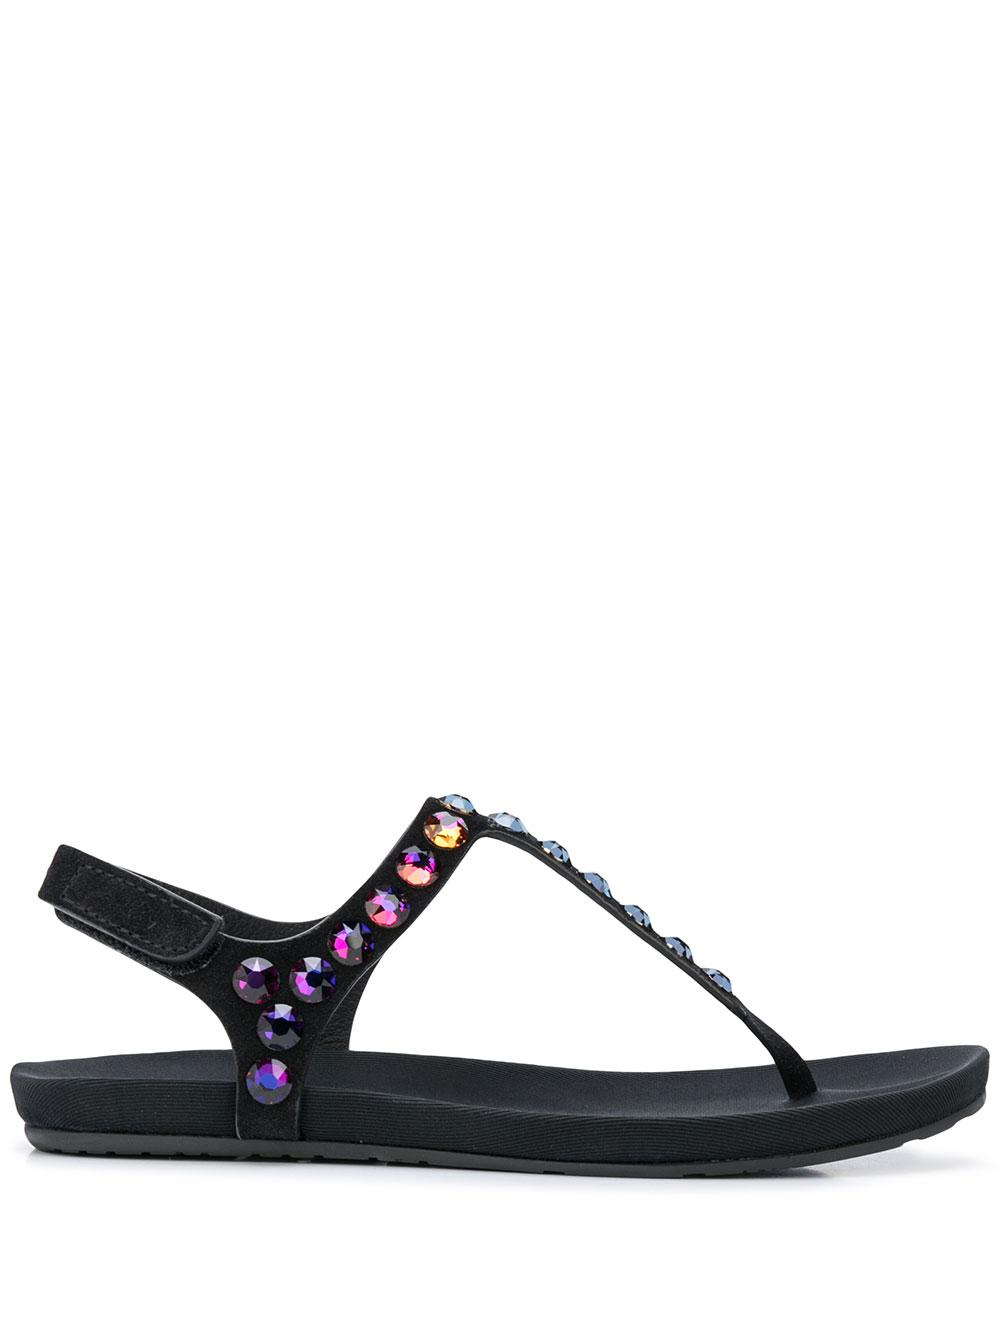 Flat Thong Sandal With Crystals Item # JUDITH-MC